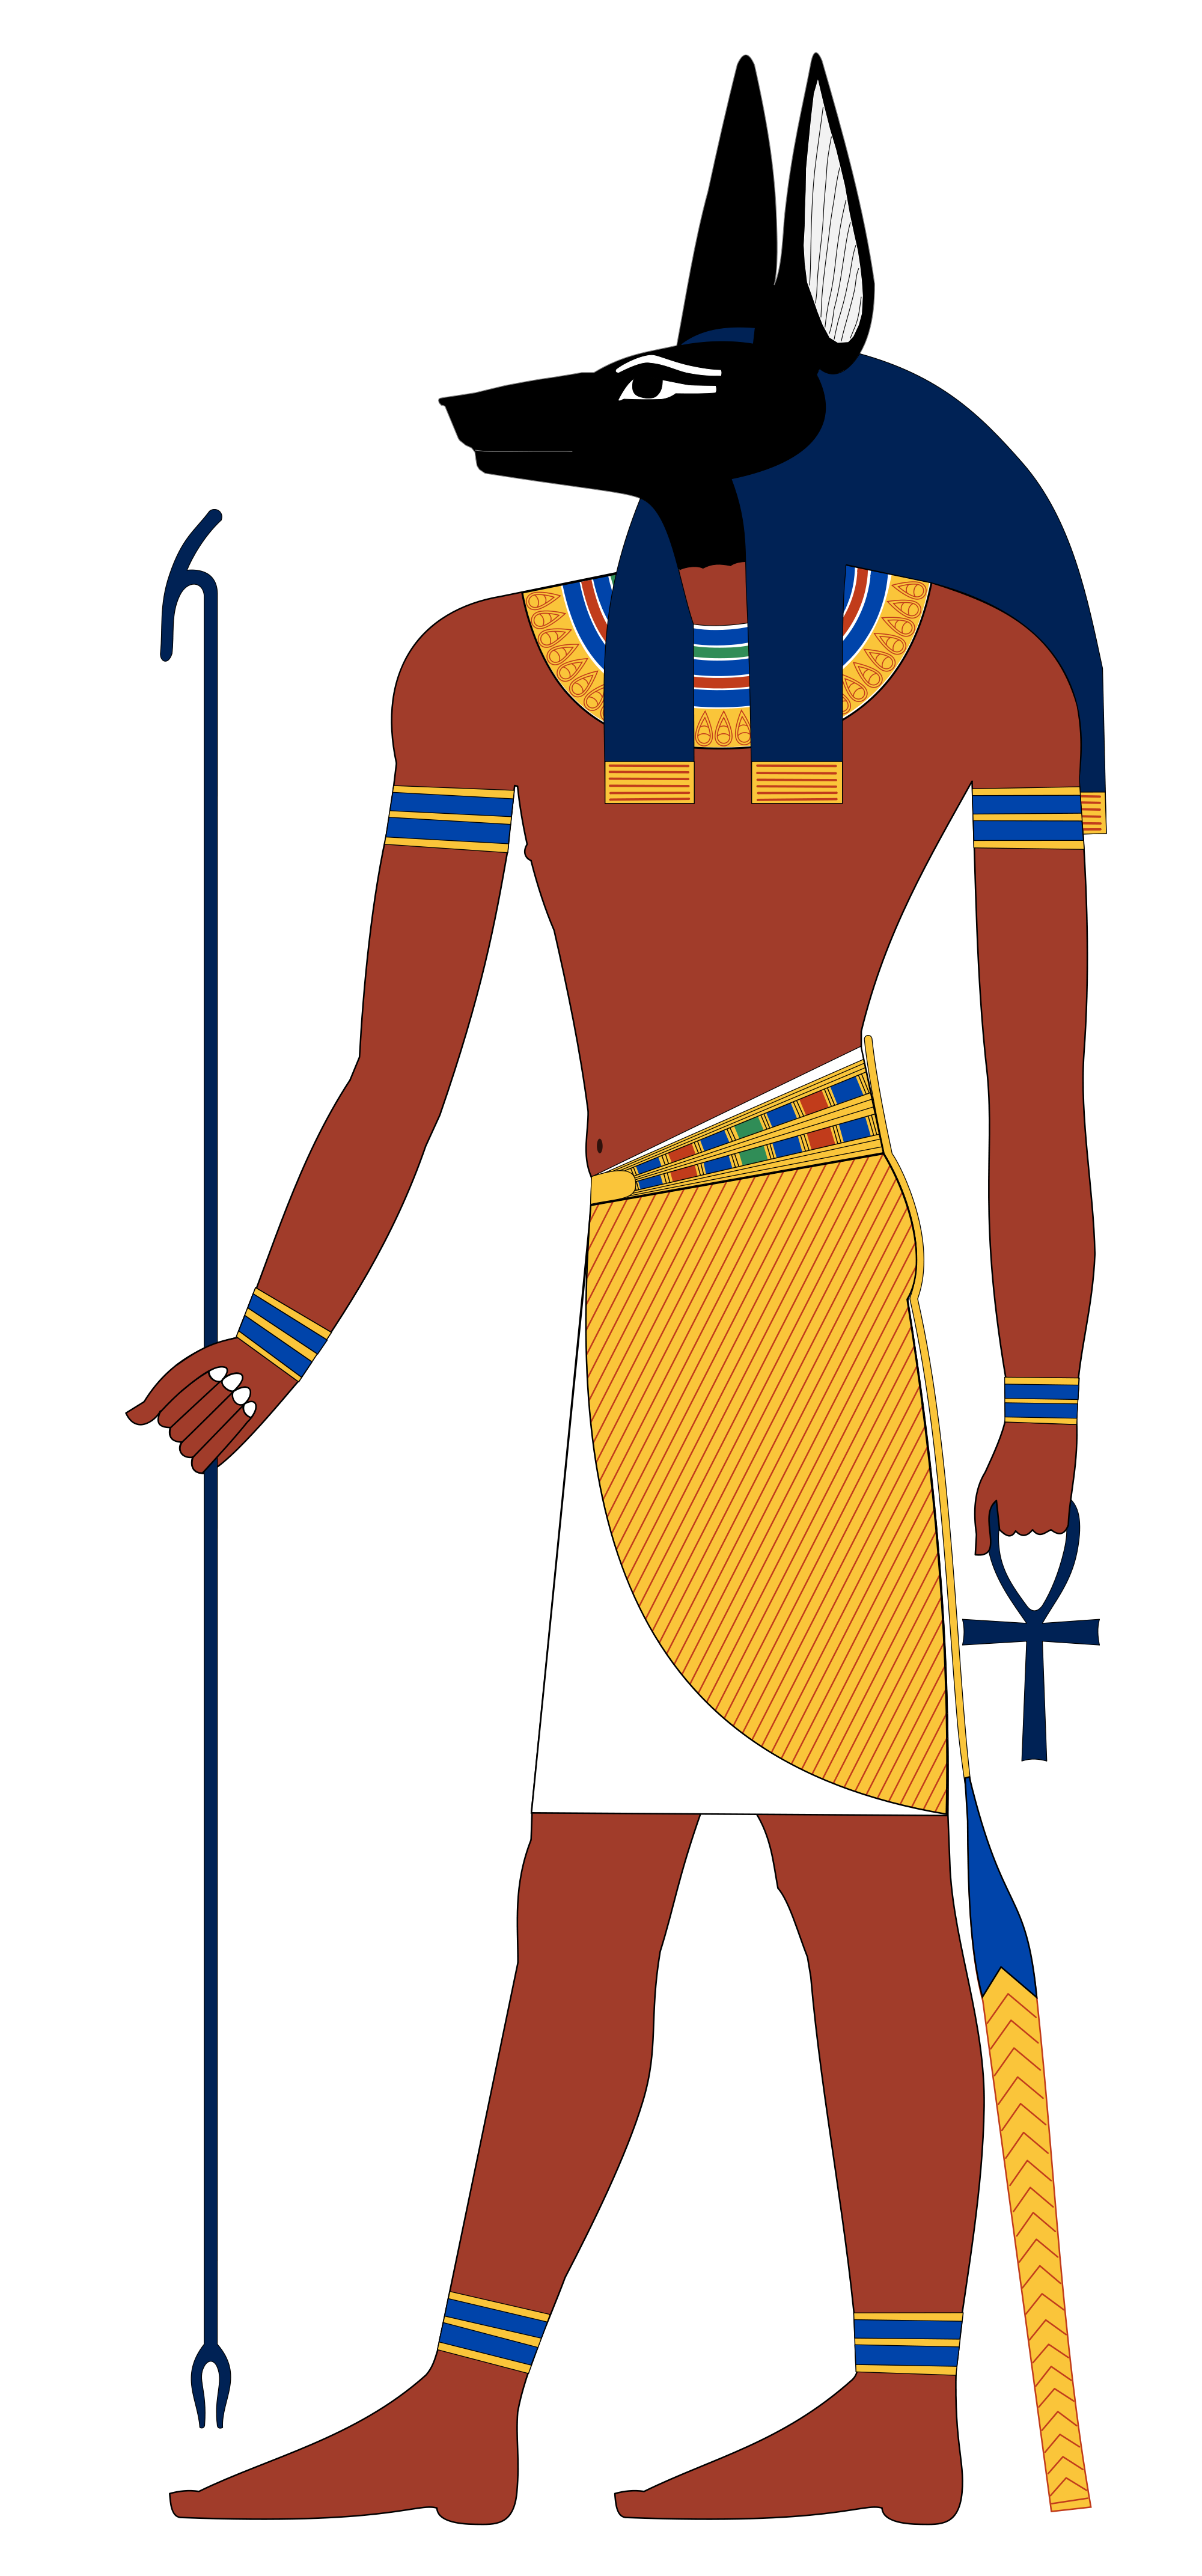 My Wicca Journey: Anubis (jackal headed god of the dead.